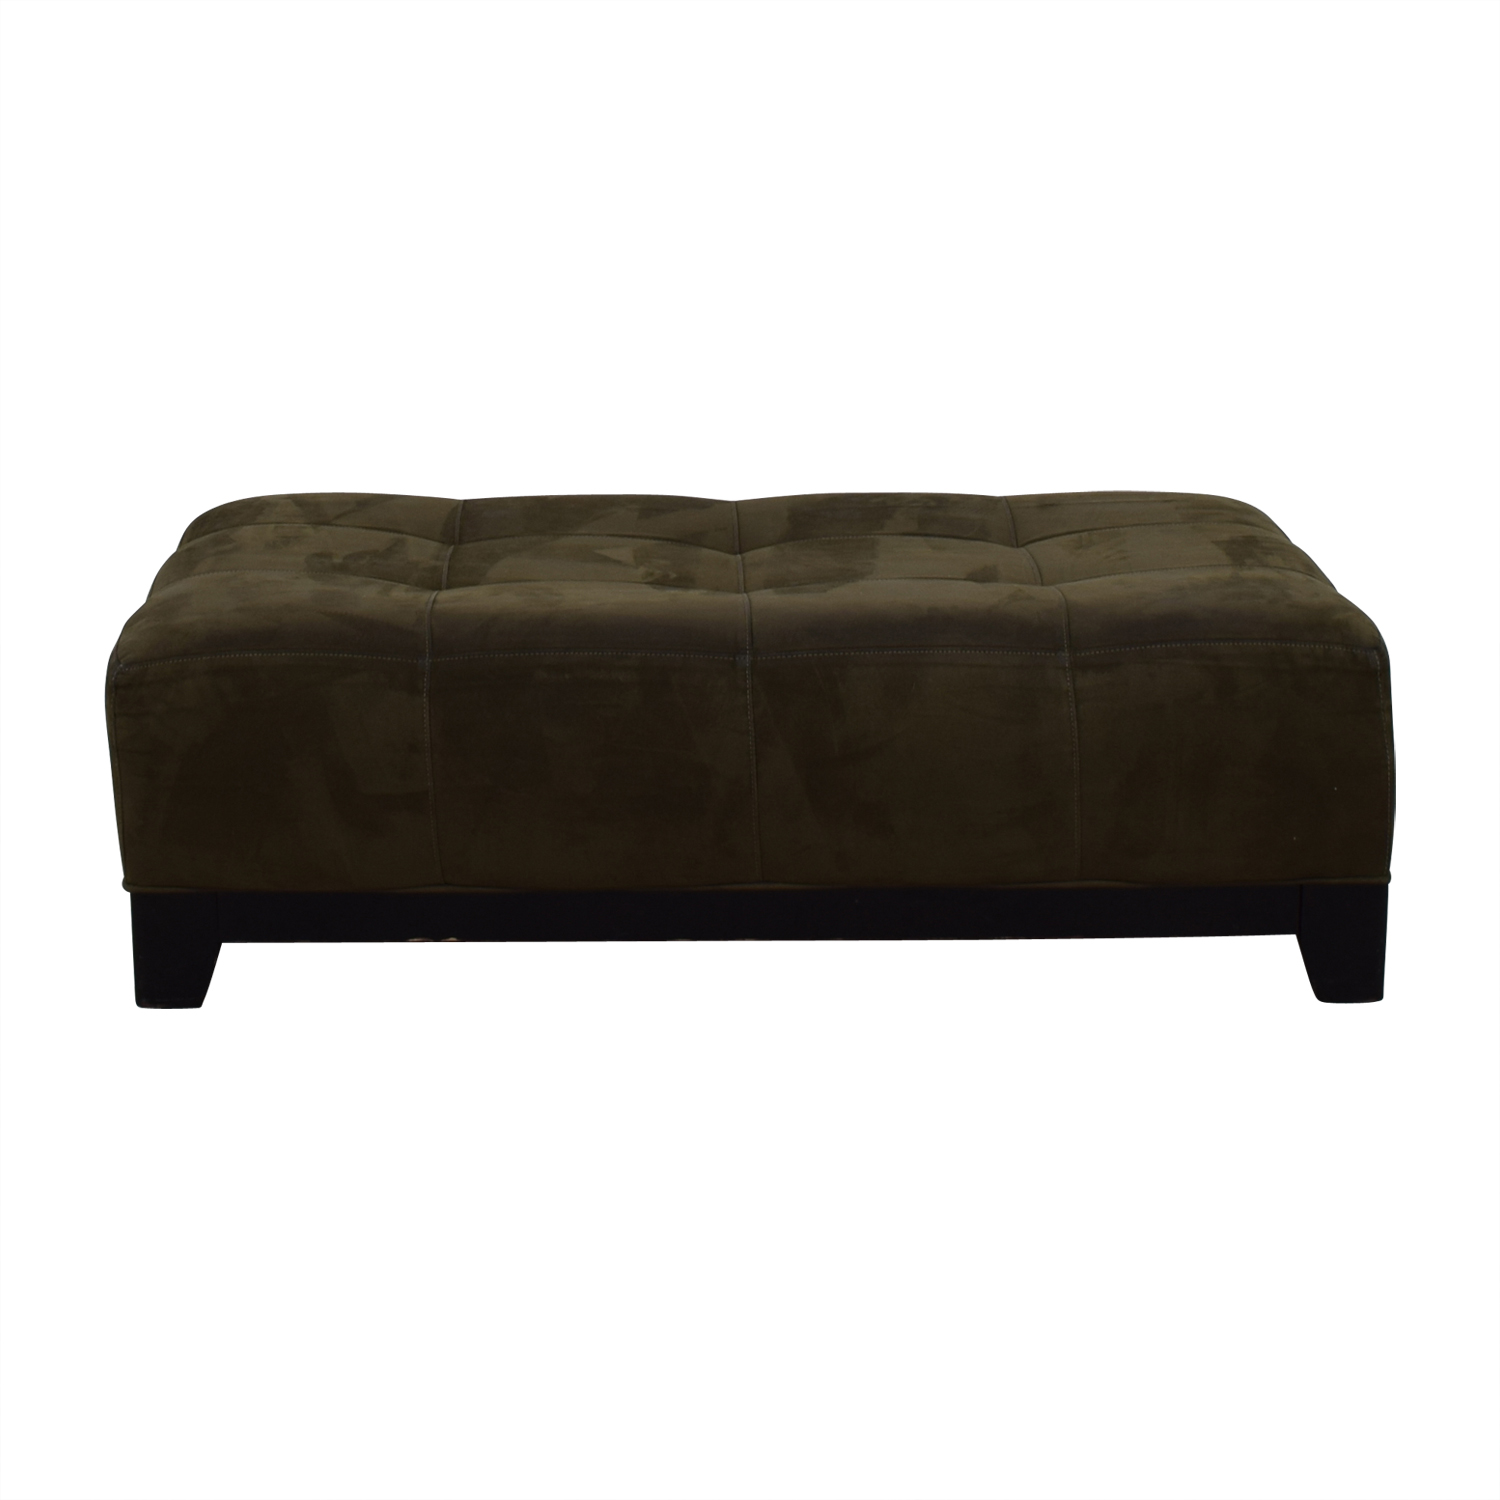 buy raymour flanigan brown leather ottoman raymour flanigan chairs